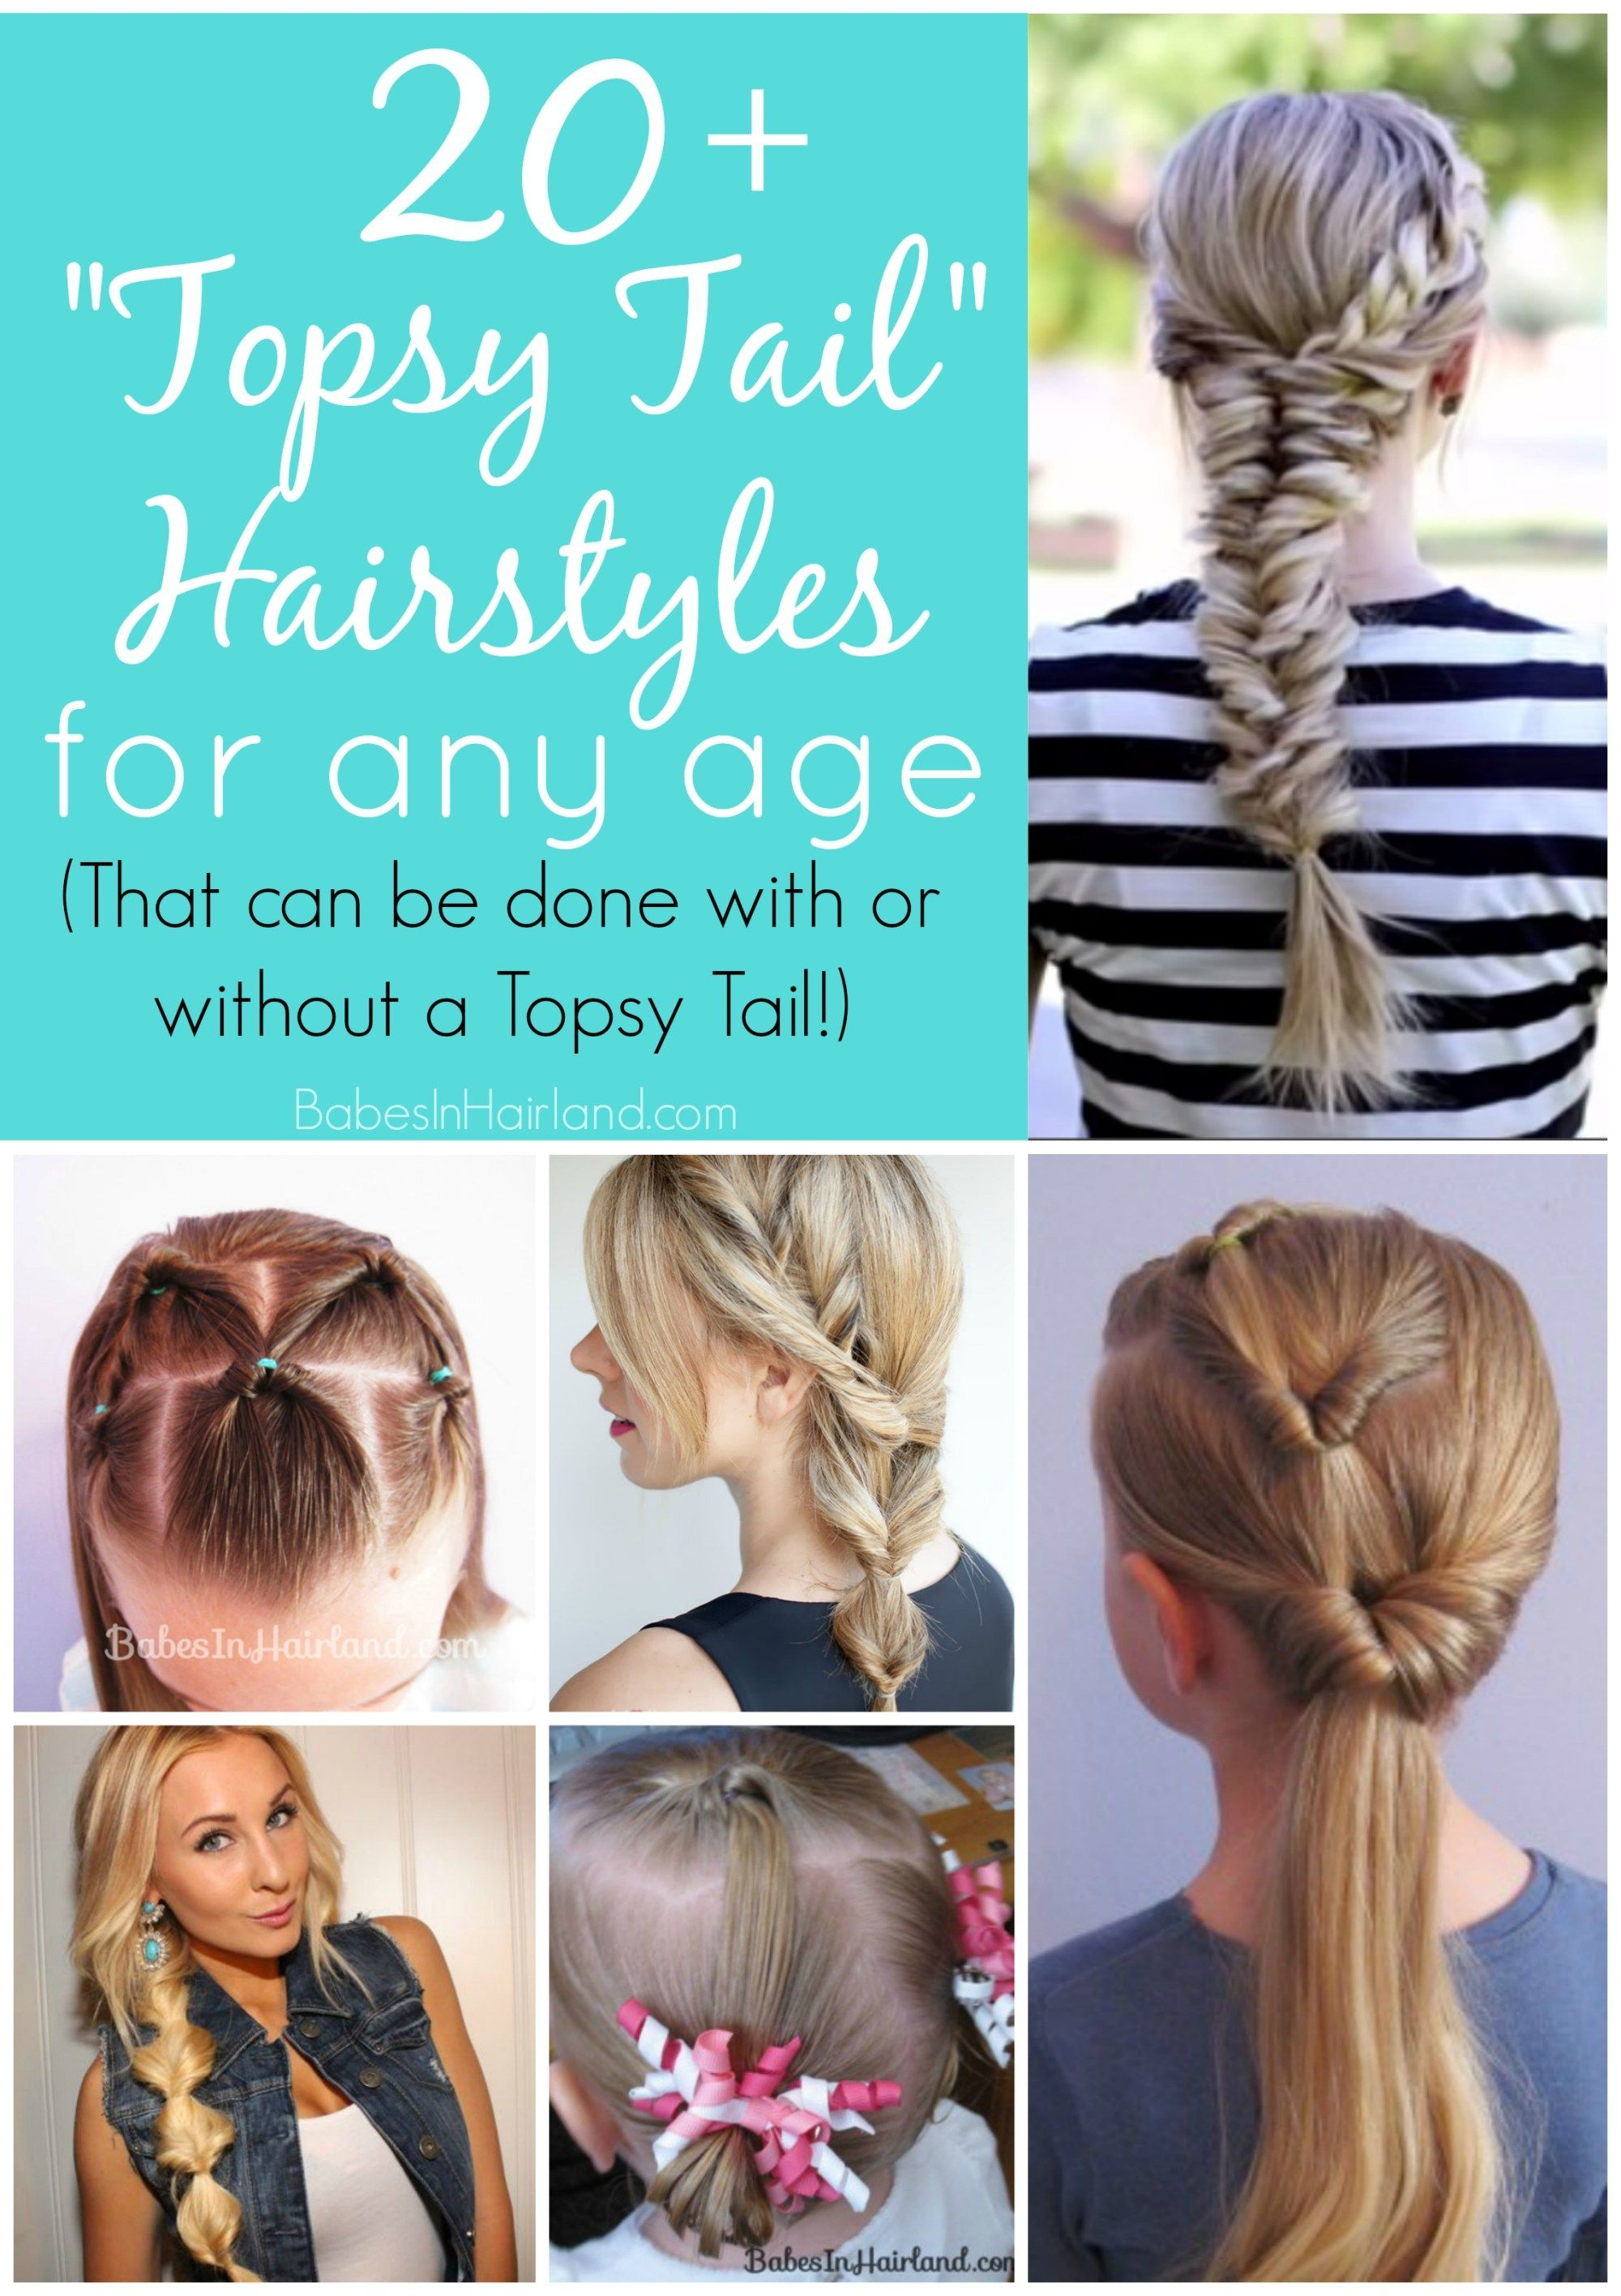 10++ Topsy tail hairstyles for long hair trends